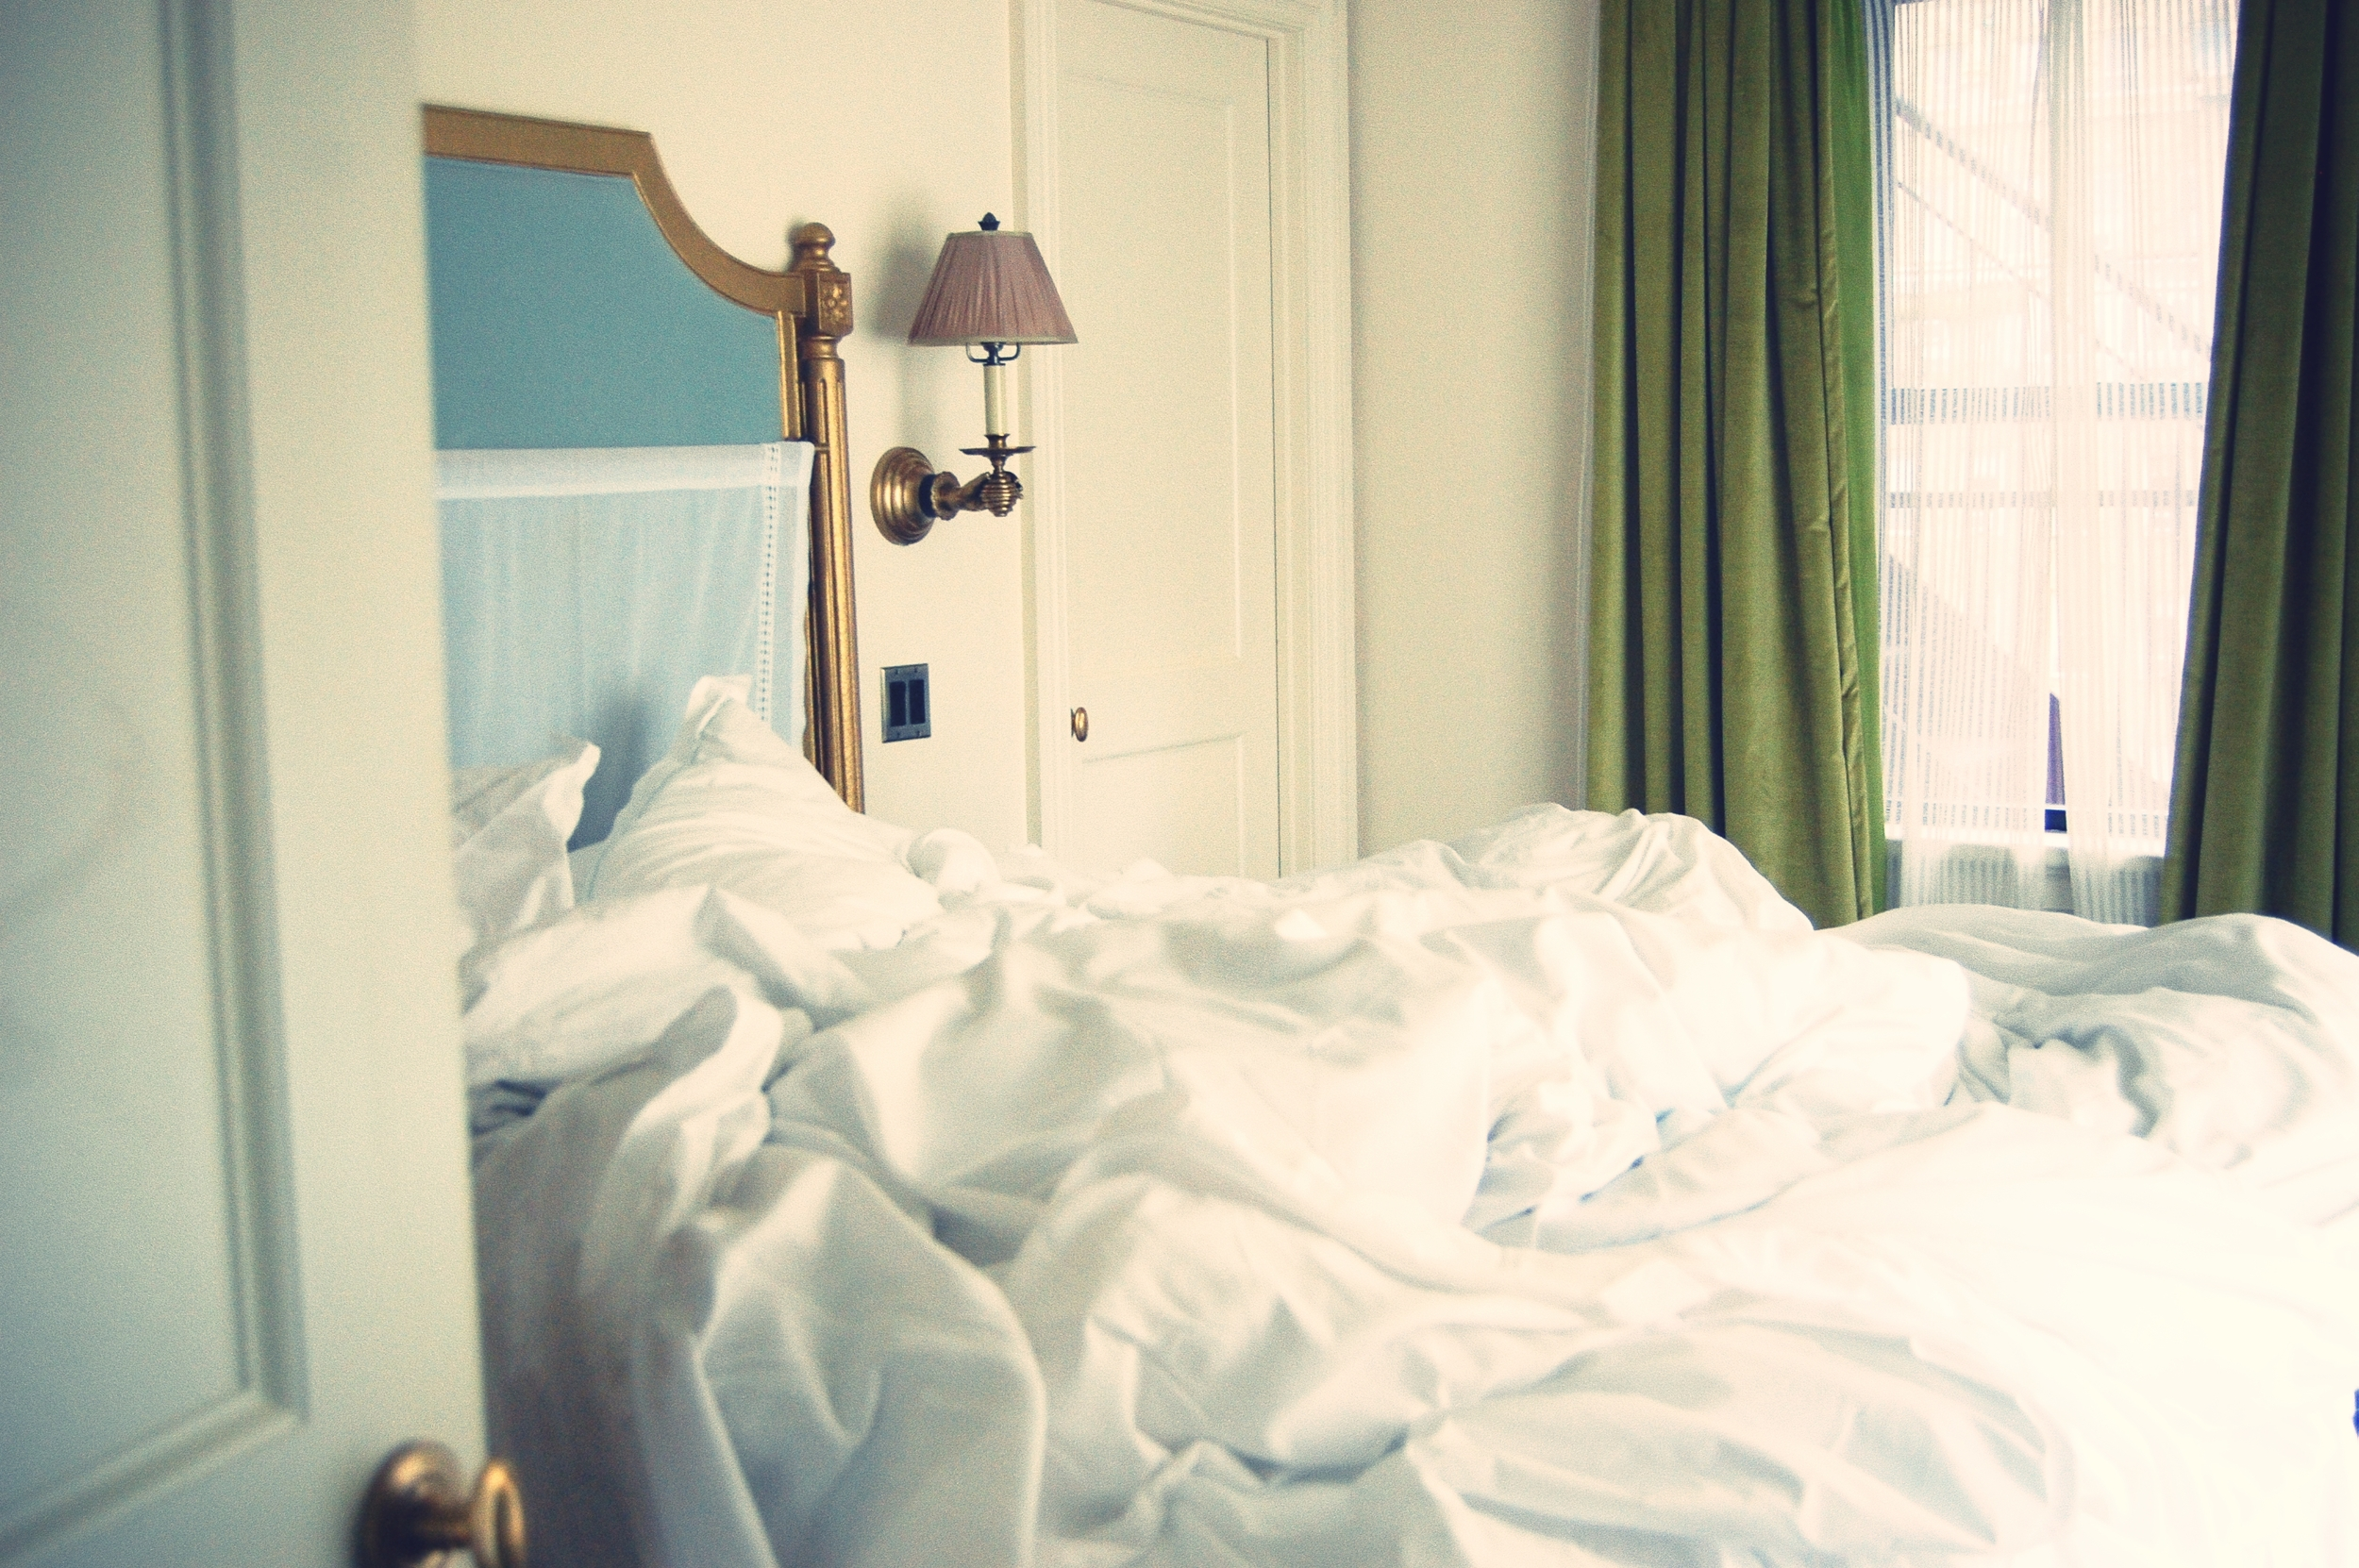 Linens: Riteway // Pillows, Duvet, and Feather Topper: Down, Etc. // He Slept Here: Jack Kerouac (previously Marlton House)